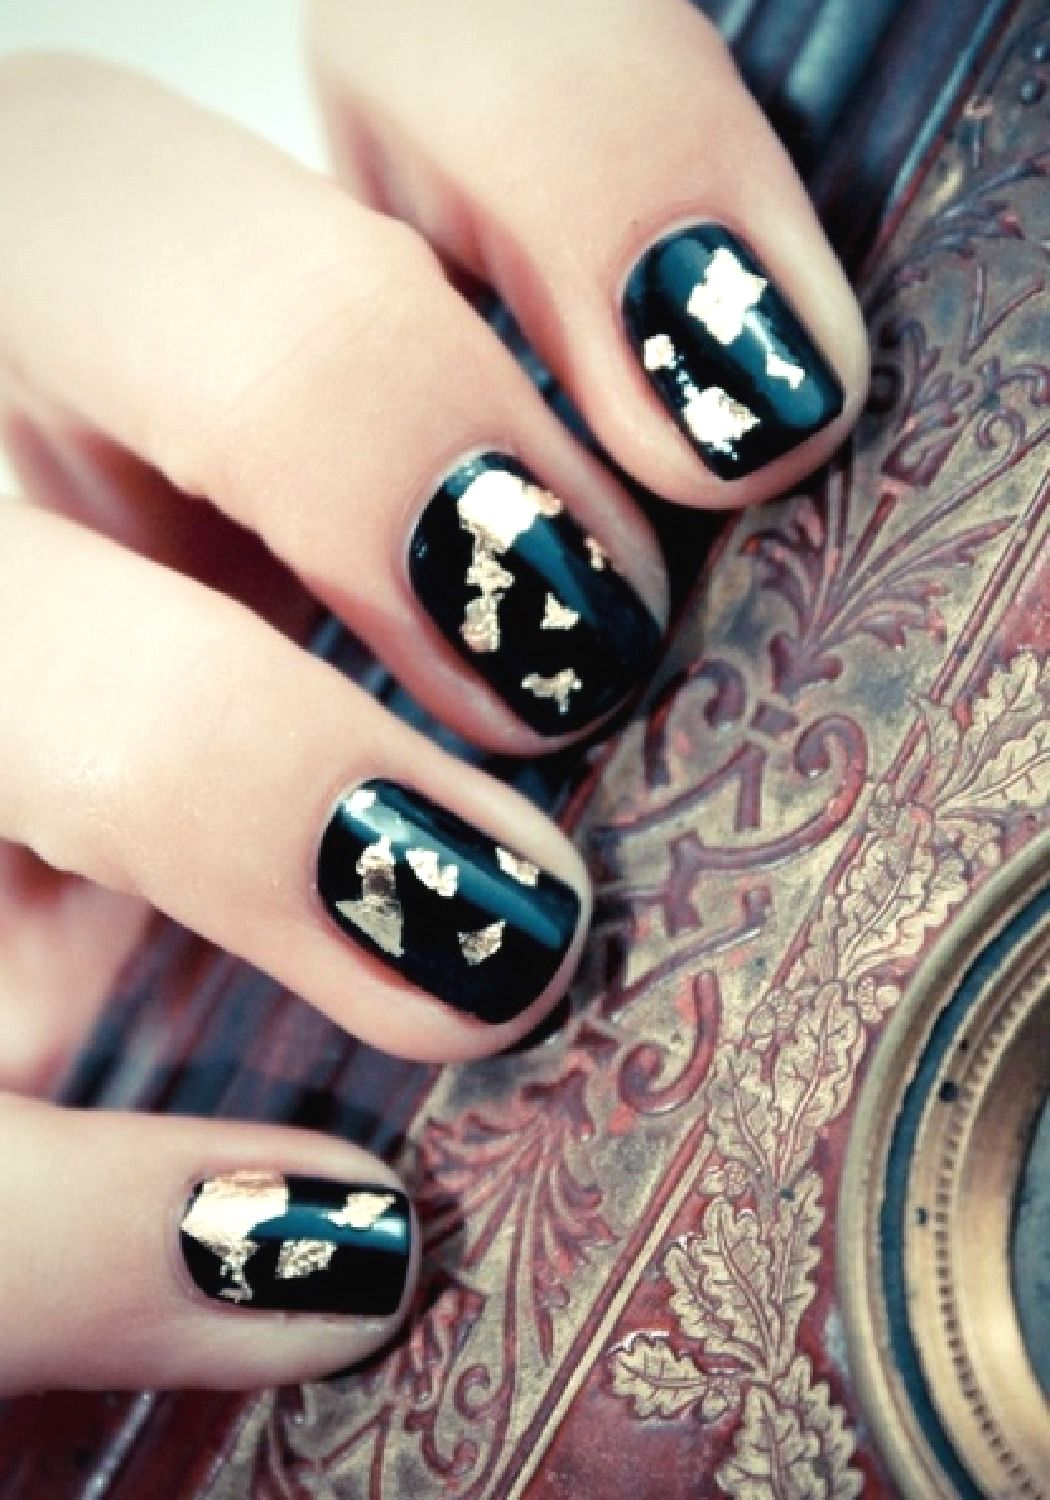 Pin by nesterbs2mk0 on Nails in 2020 | Nails, Minimalist